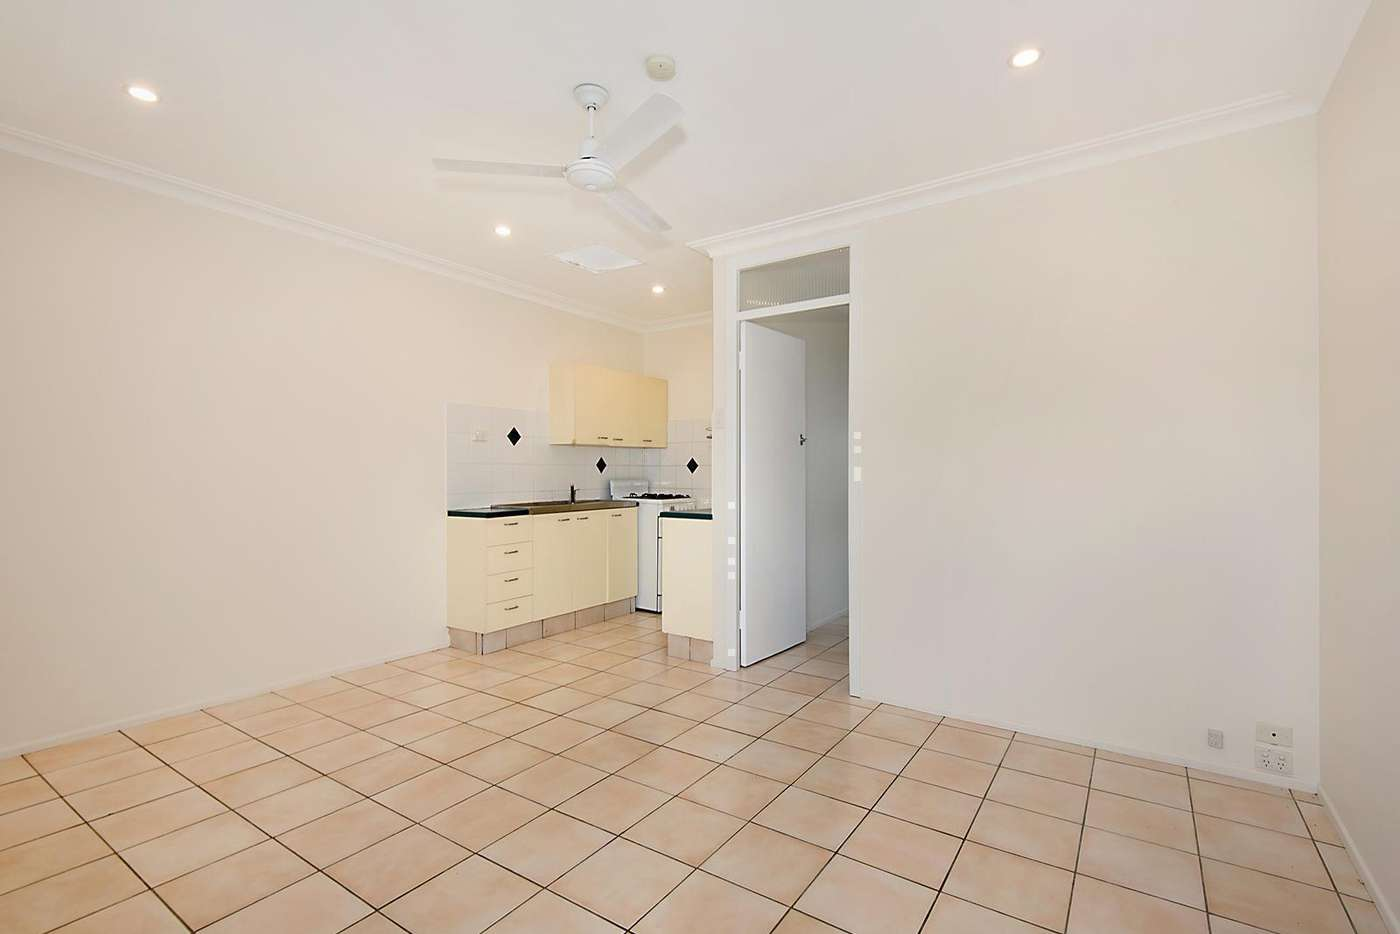 Main view of Homely apartment listing, 8/129 Merthyr Road, New Farm QLD 4005